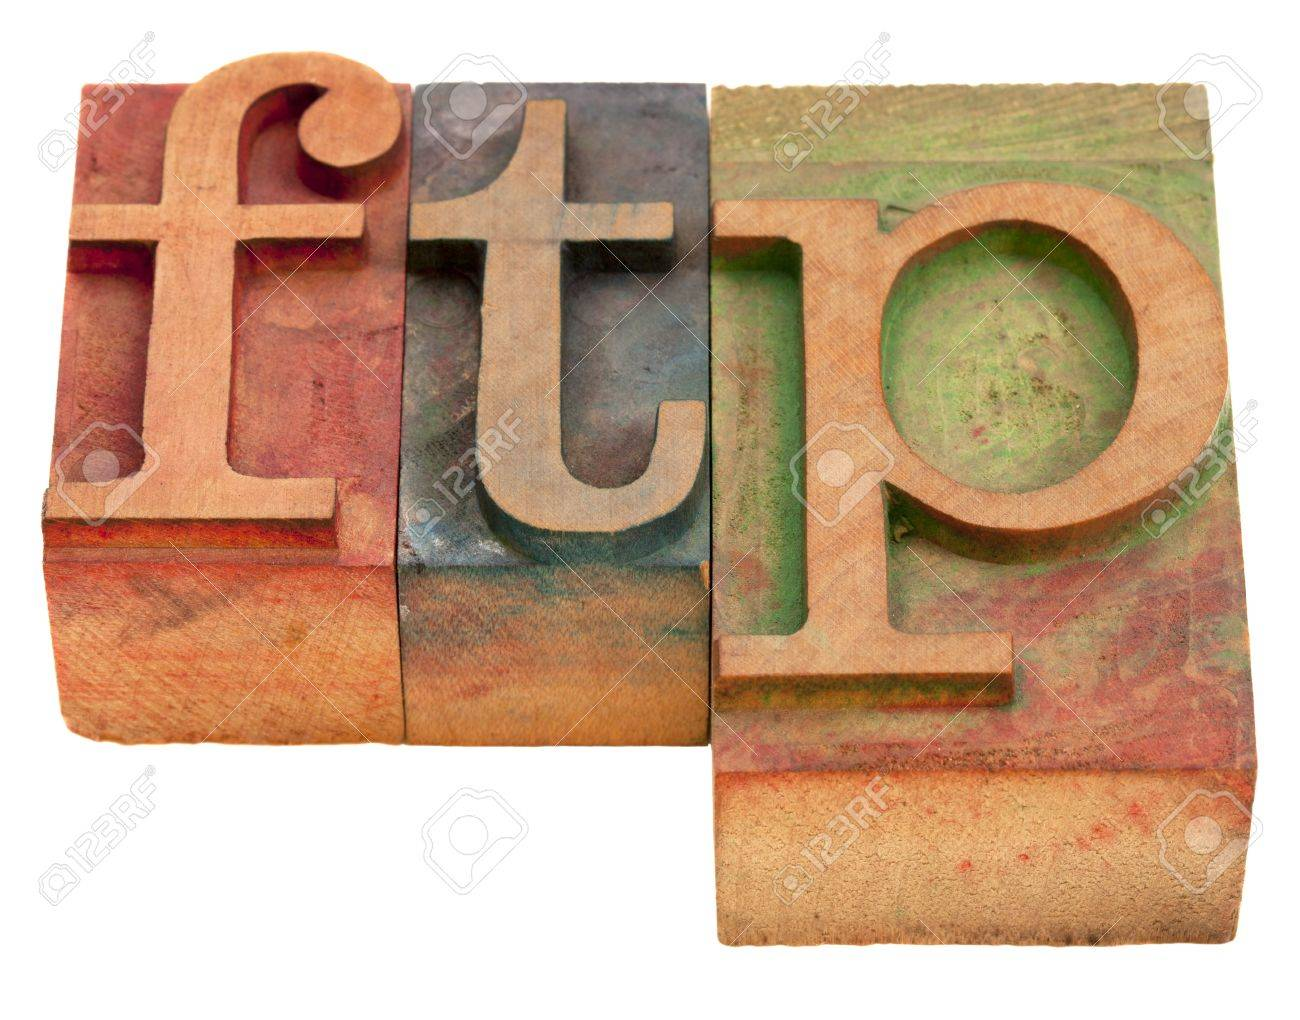 ftp (file transfer protocol) - word in vintage wooden letterpress printing blocks isolated on white Stock Photo - 8323672